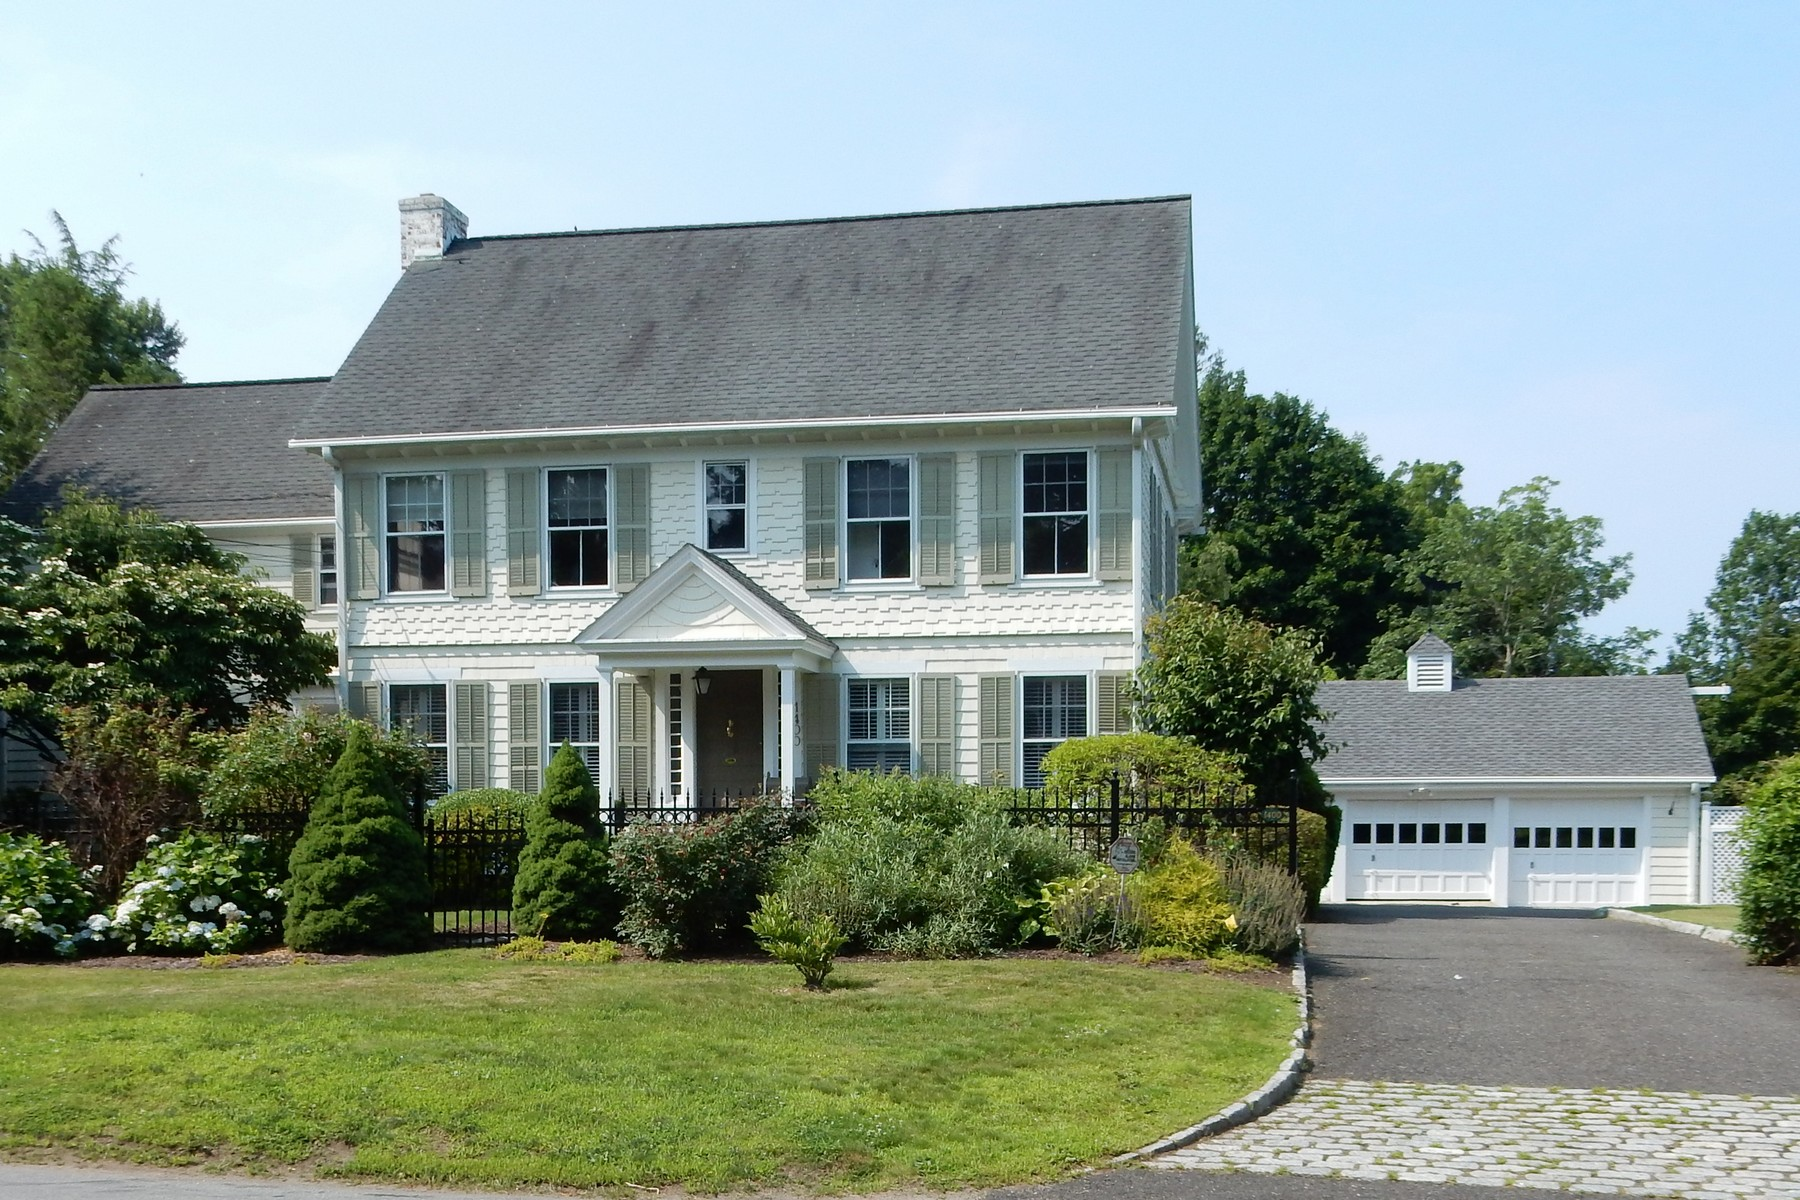 Single Family Home for Sale at Fabulous In-Town Classic Colonial with River Views 1400 Unquowa Road Fairfield, Connecticut 06824 United States